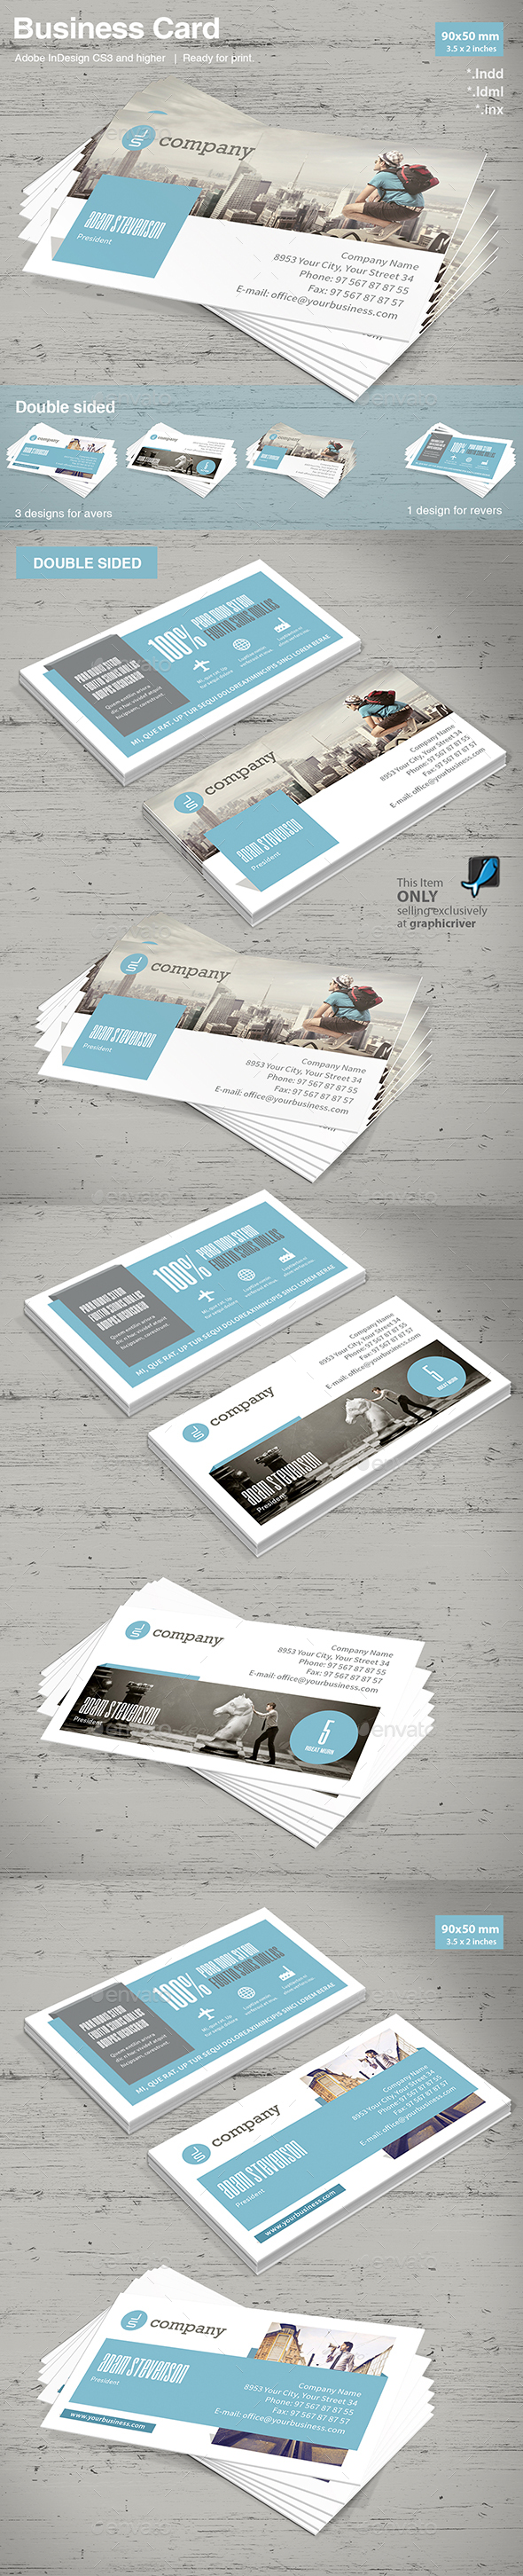 Corporate Business Card Vol. 2 - Corporate Business Cards